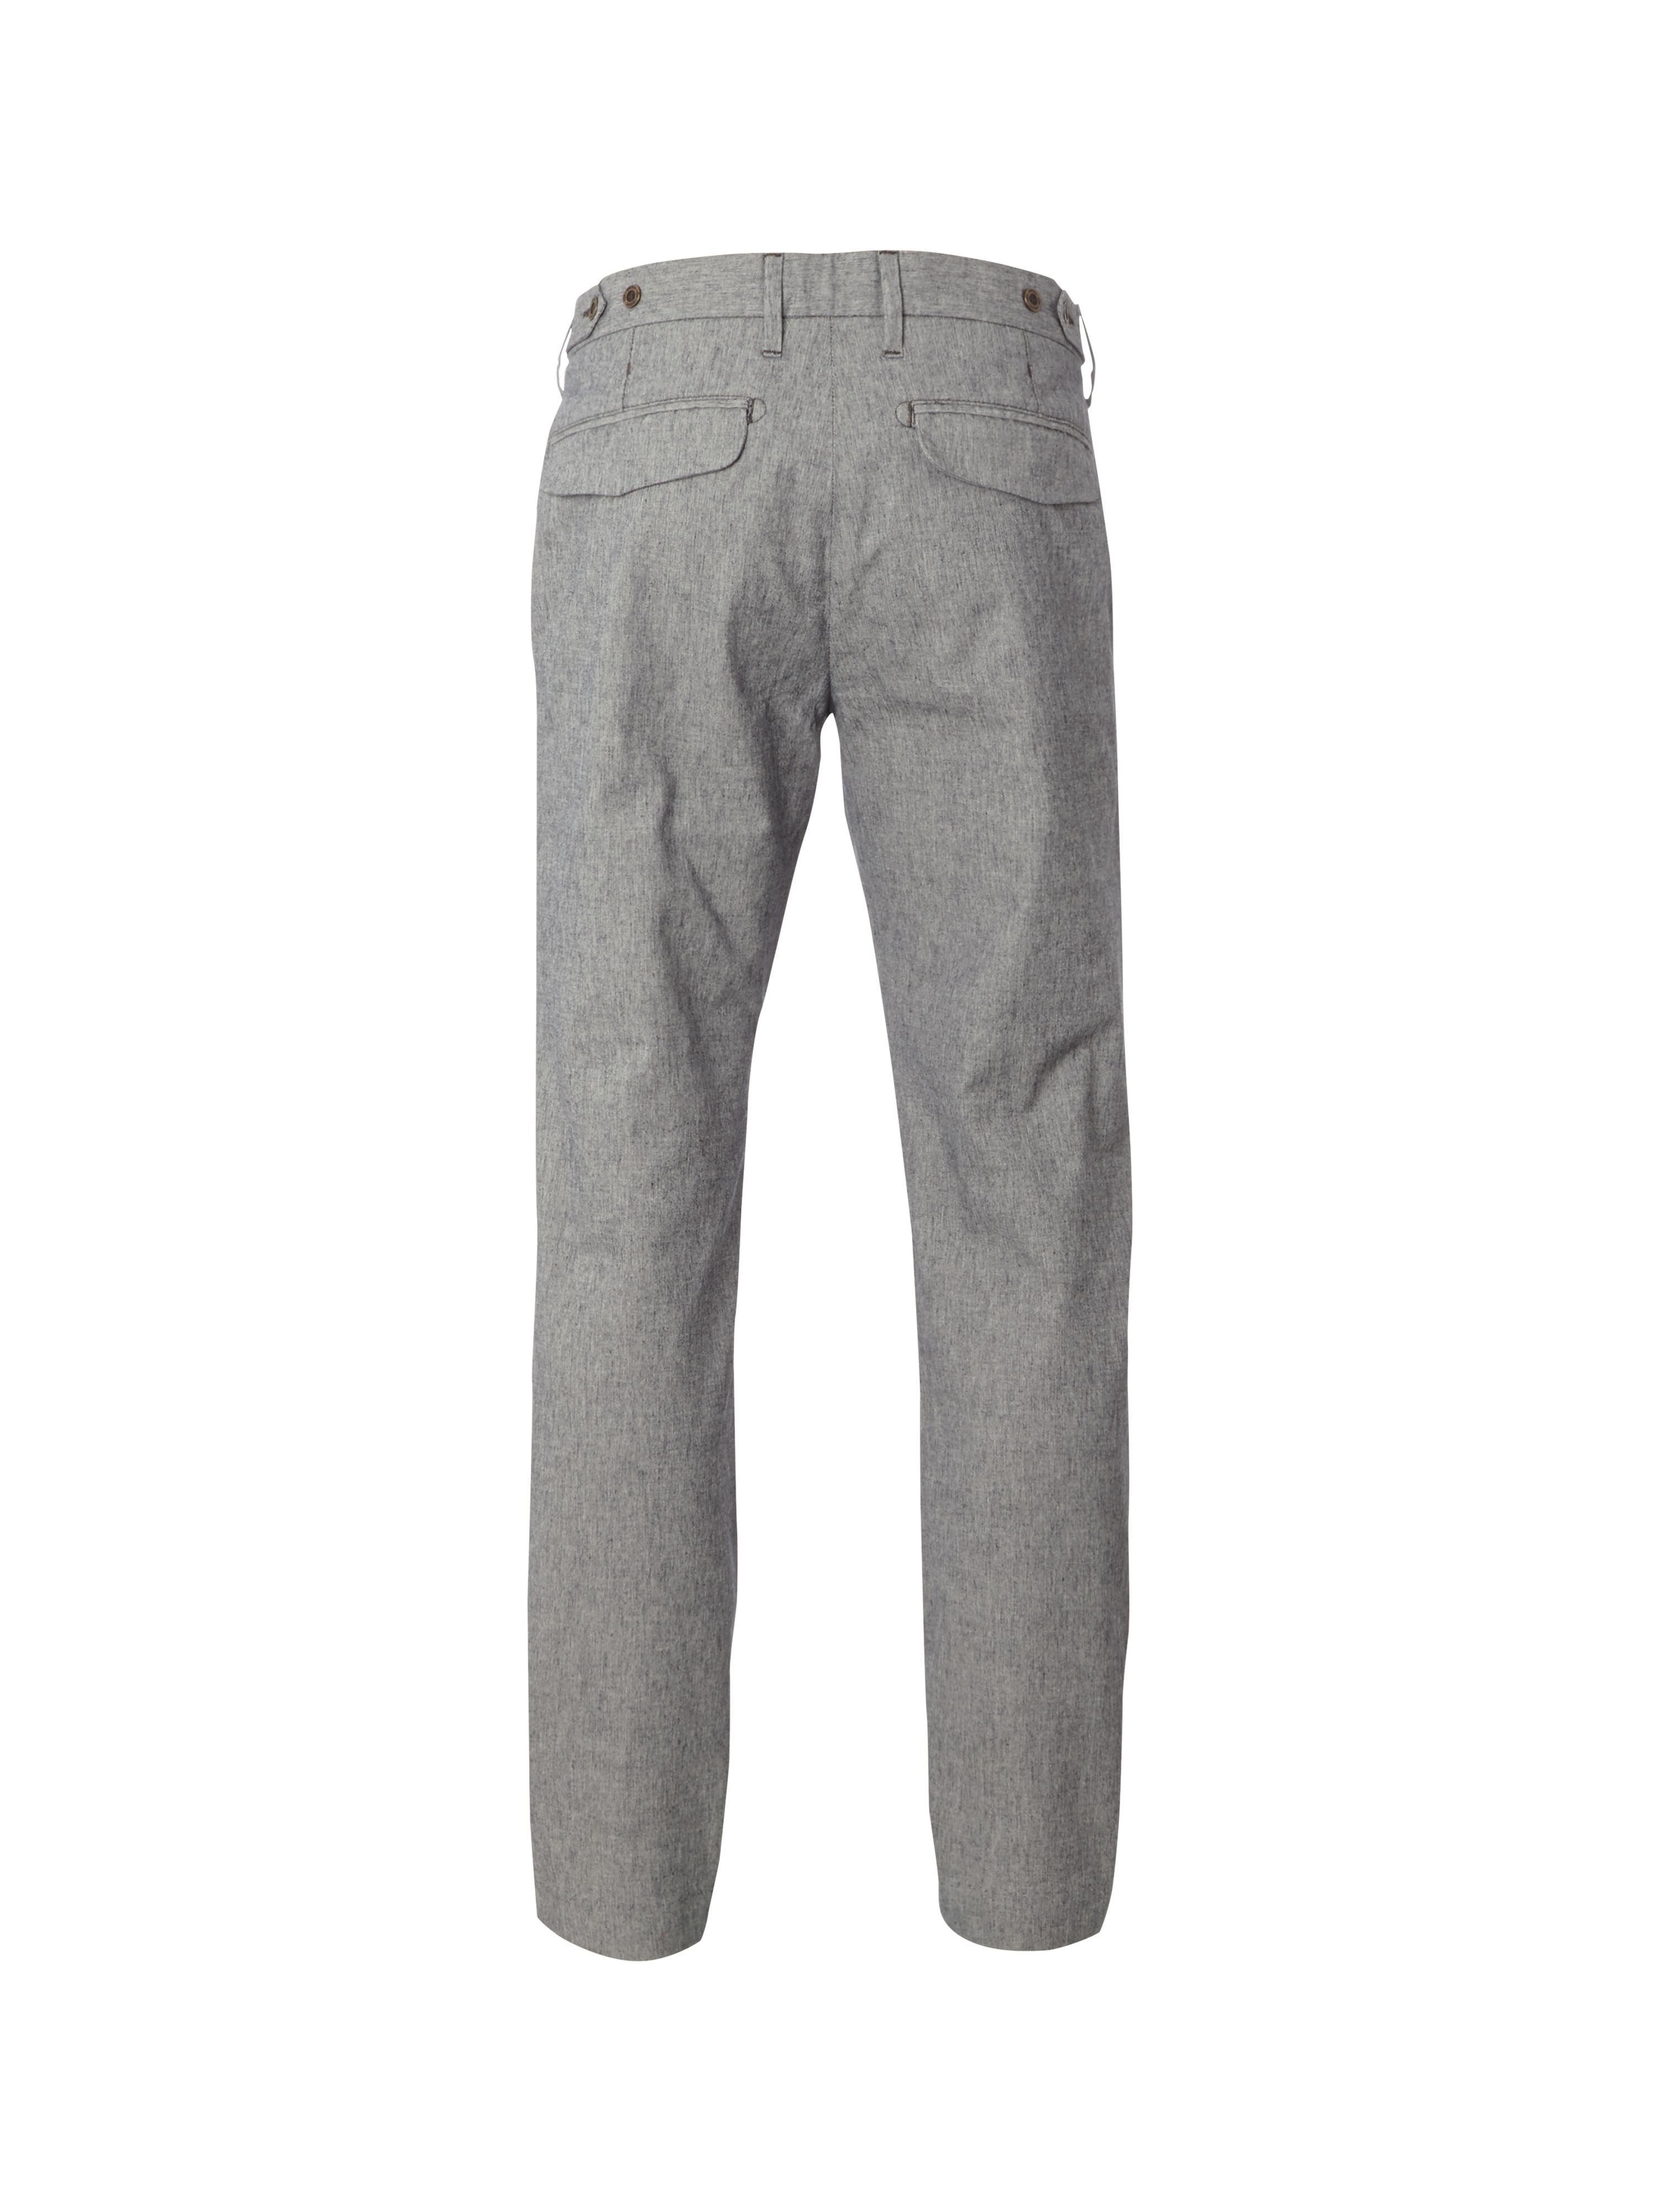 Hampstead trousers